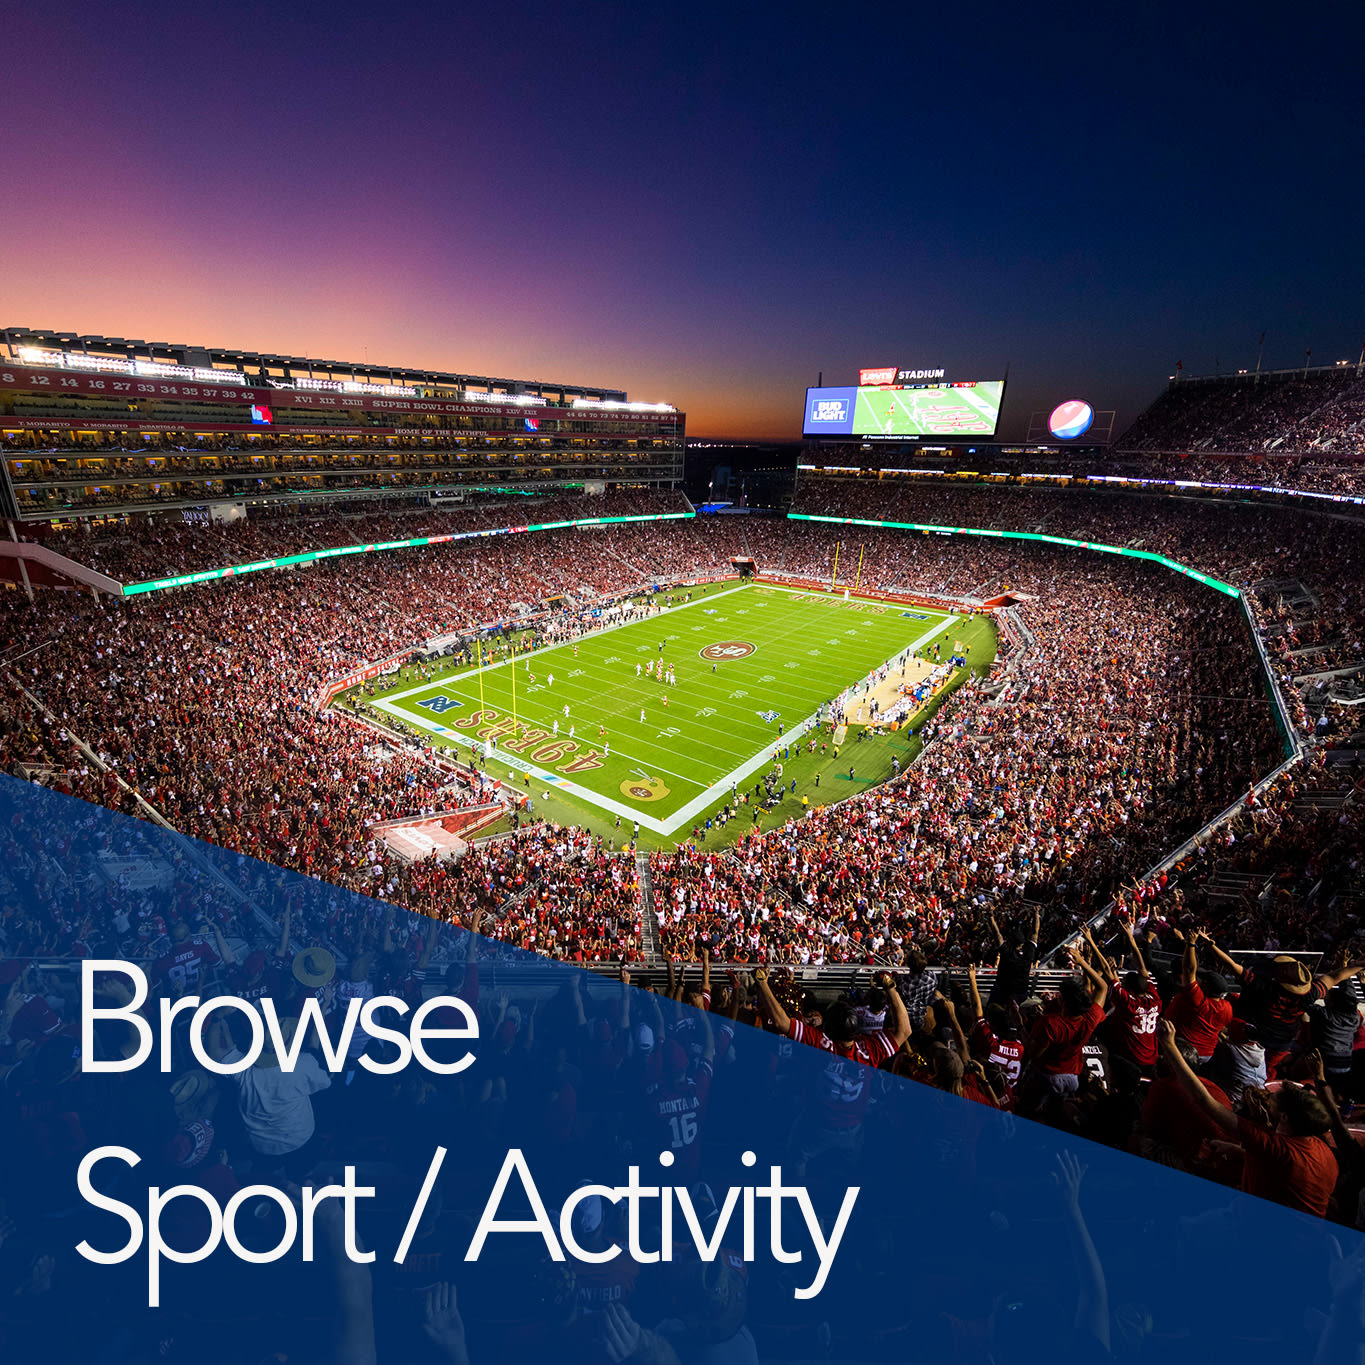 Browse Sports and Activities